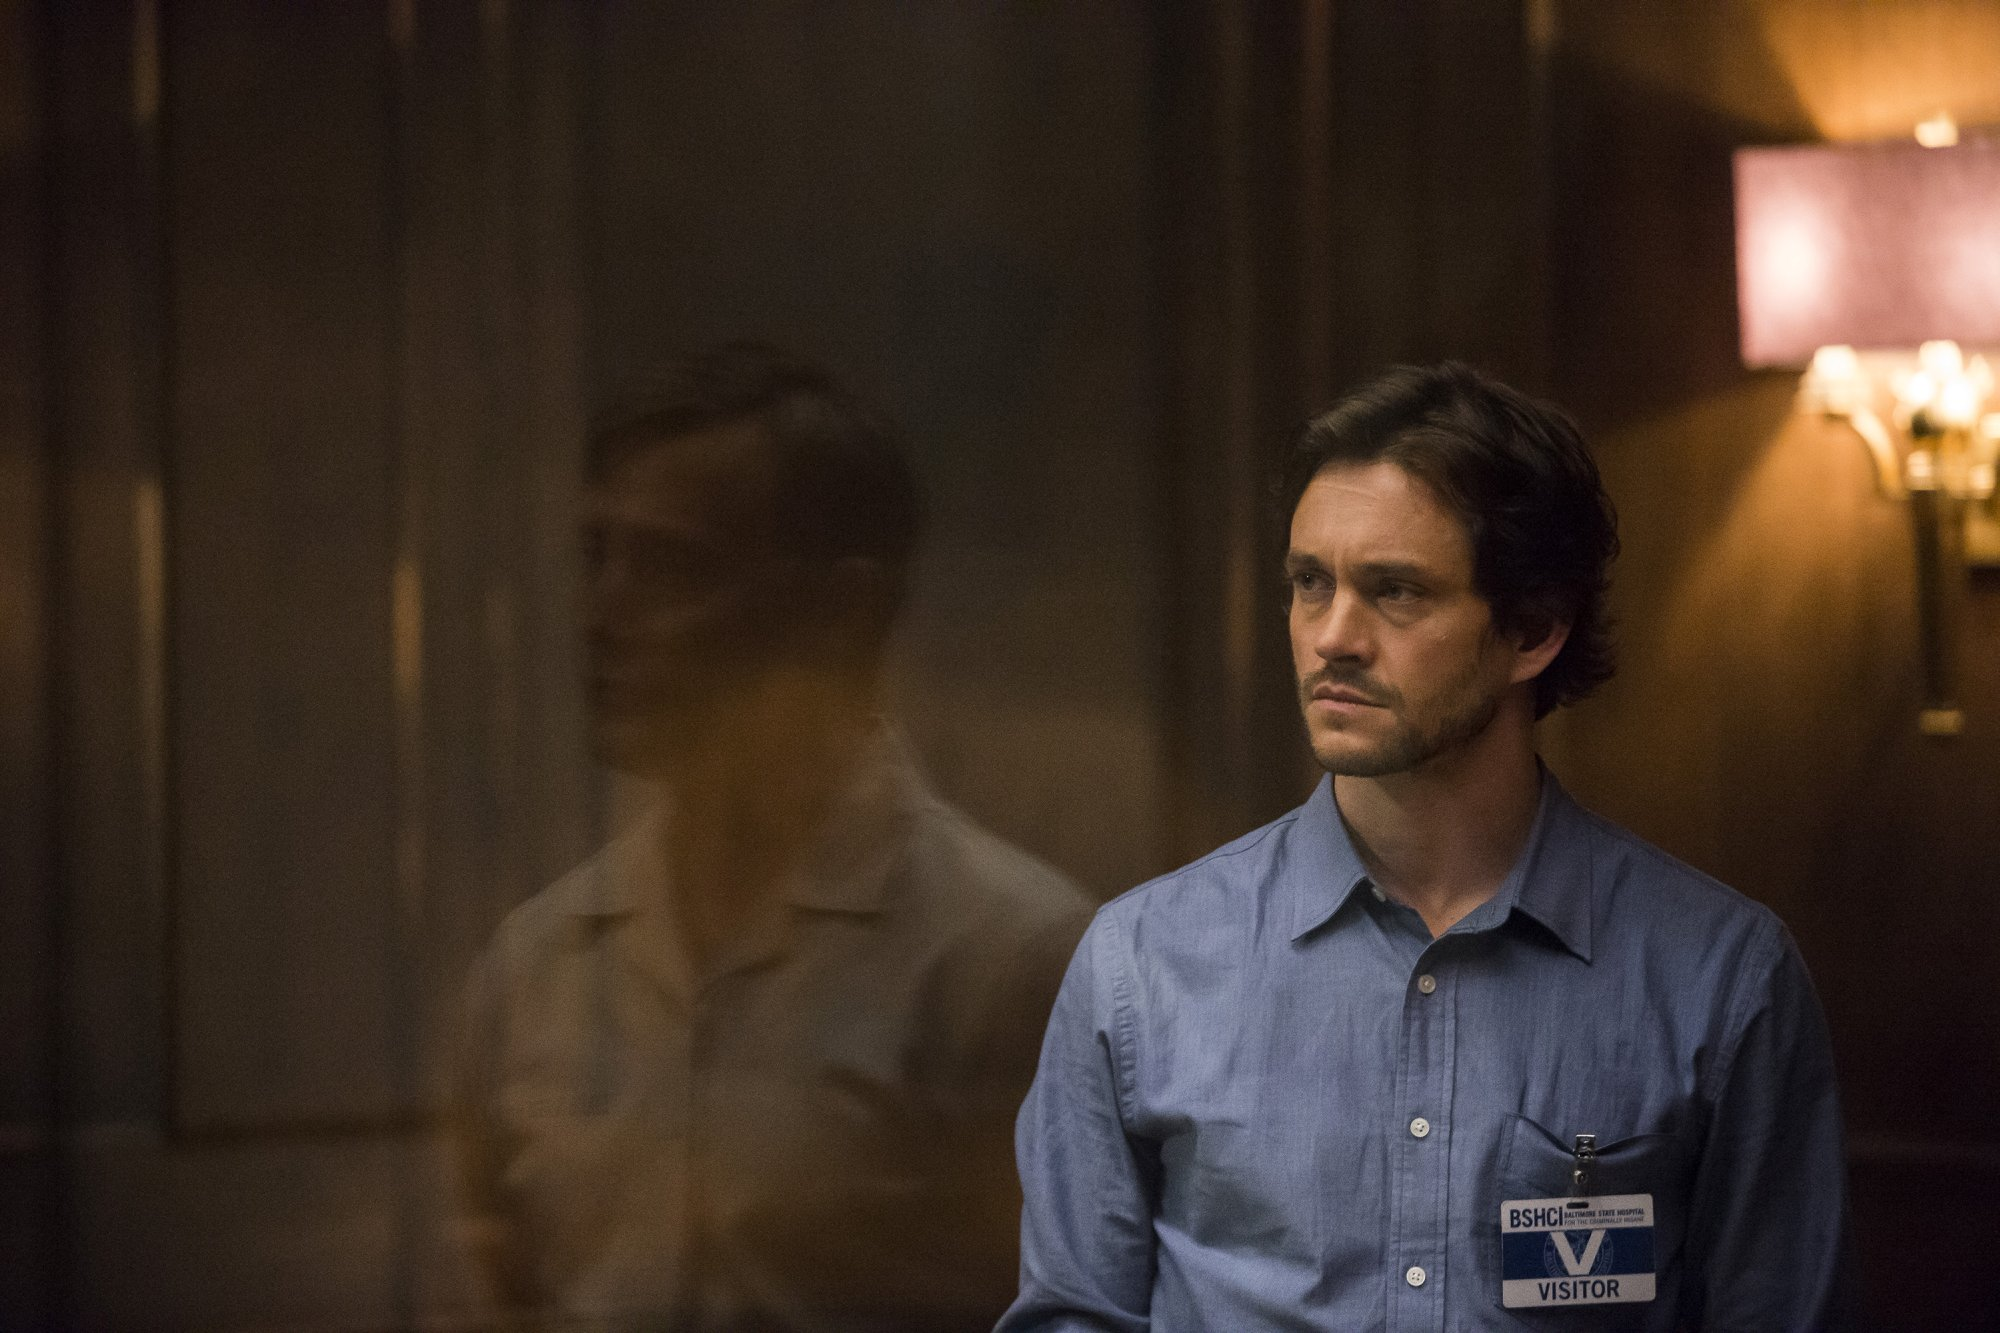 Hannibal - 03x13 - The Wrath of the Lamb 02